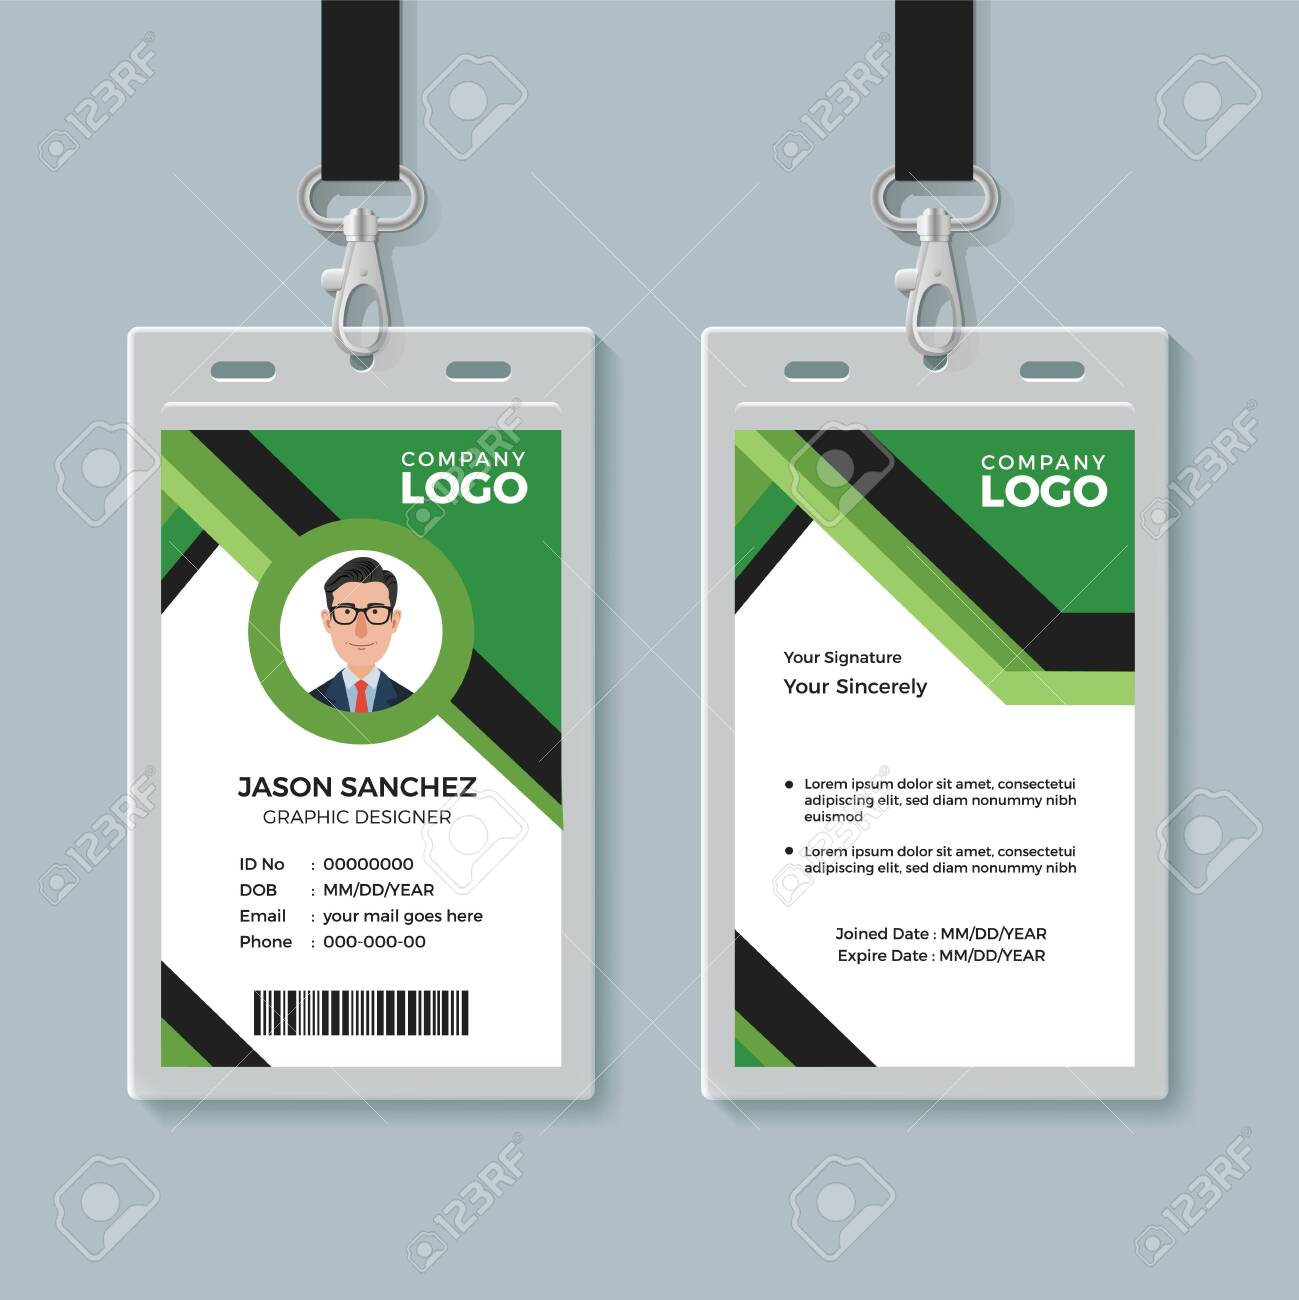 Simple Corporate Office Identity Card Design Template Royalty Free Inside Company Id Card Design Template